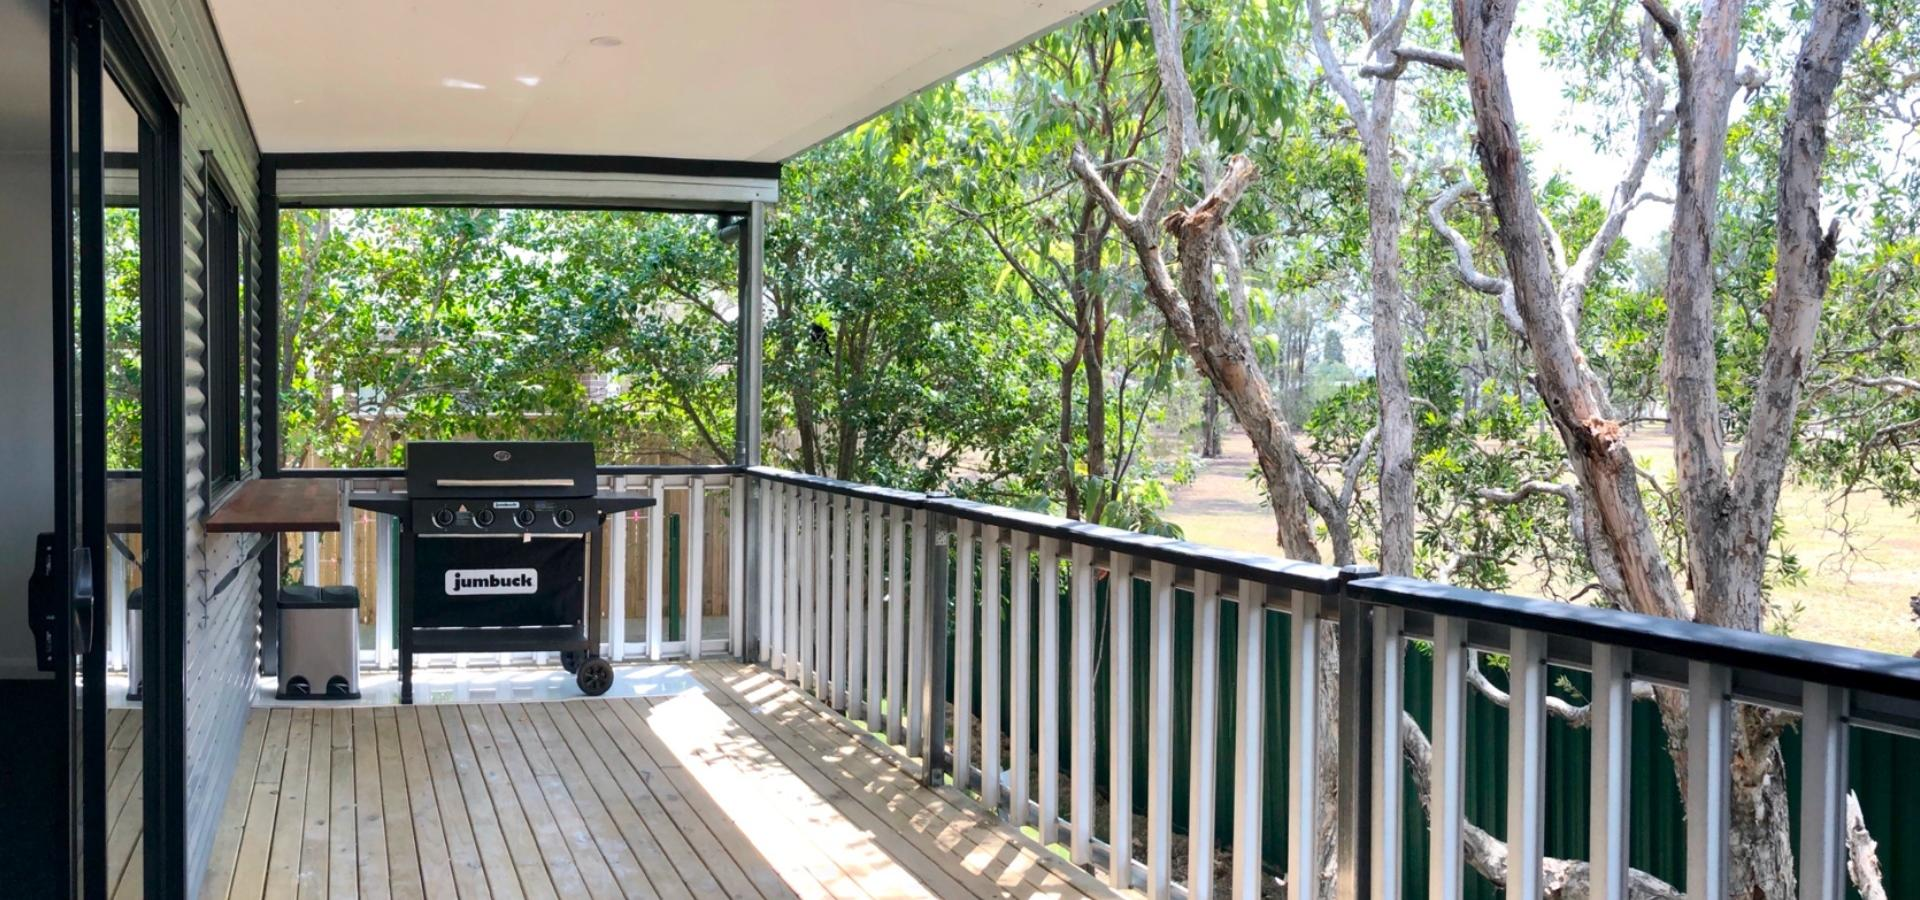 Beautiful near new home - massived covered deck overlooking acres of parkland